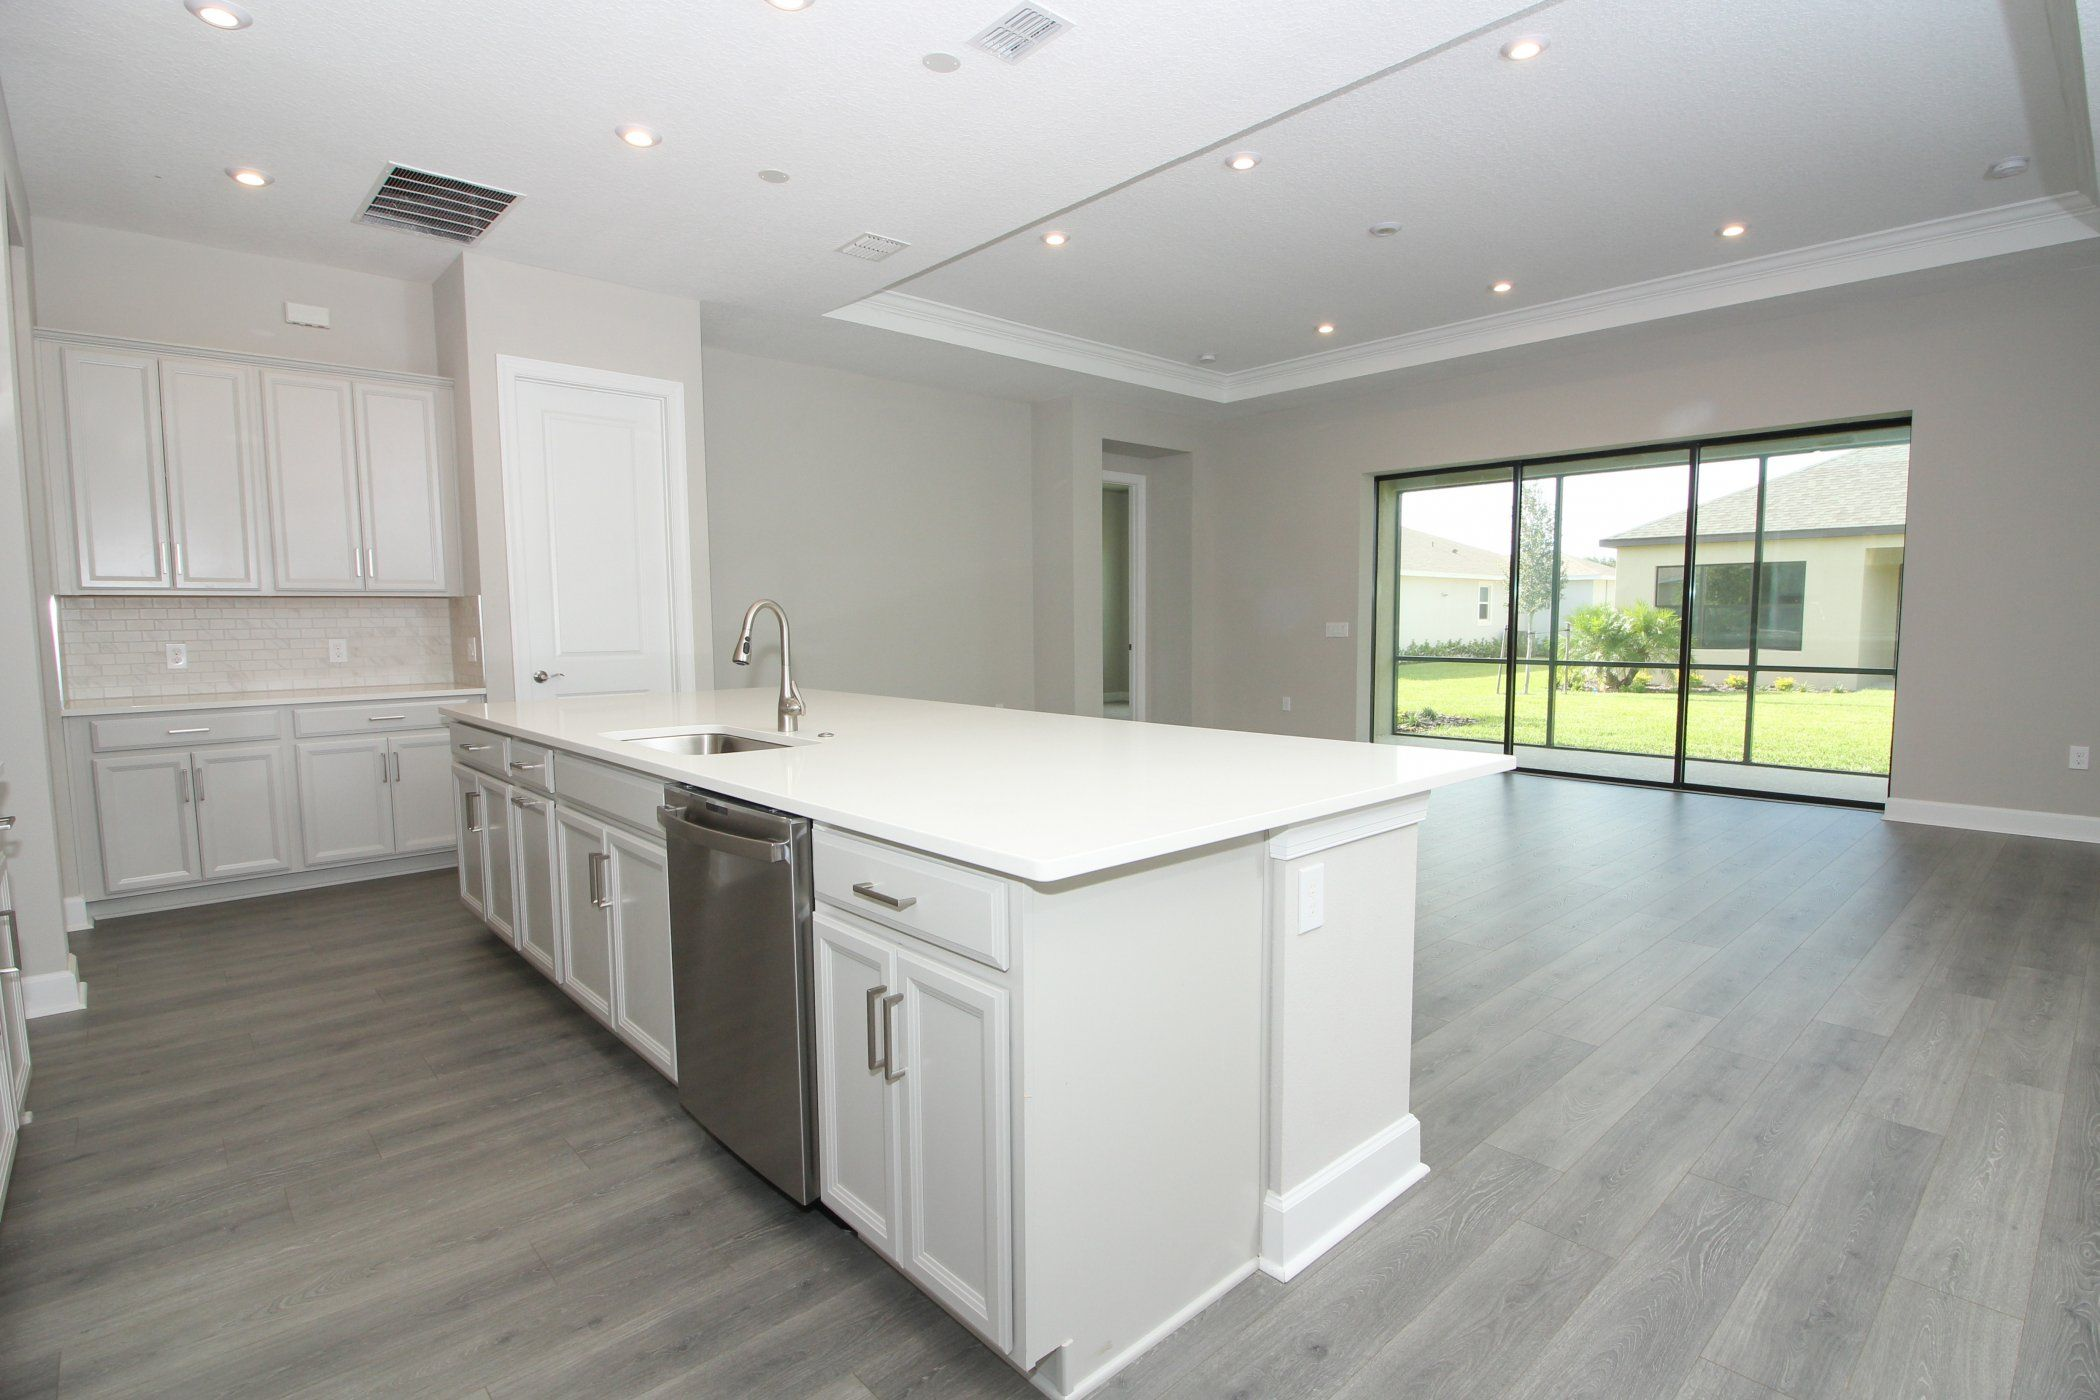 Kitchen featured in the Ambra By Taylor Morrison in Orlando, FL